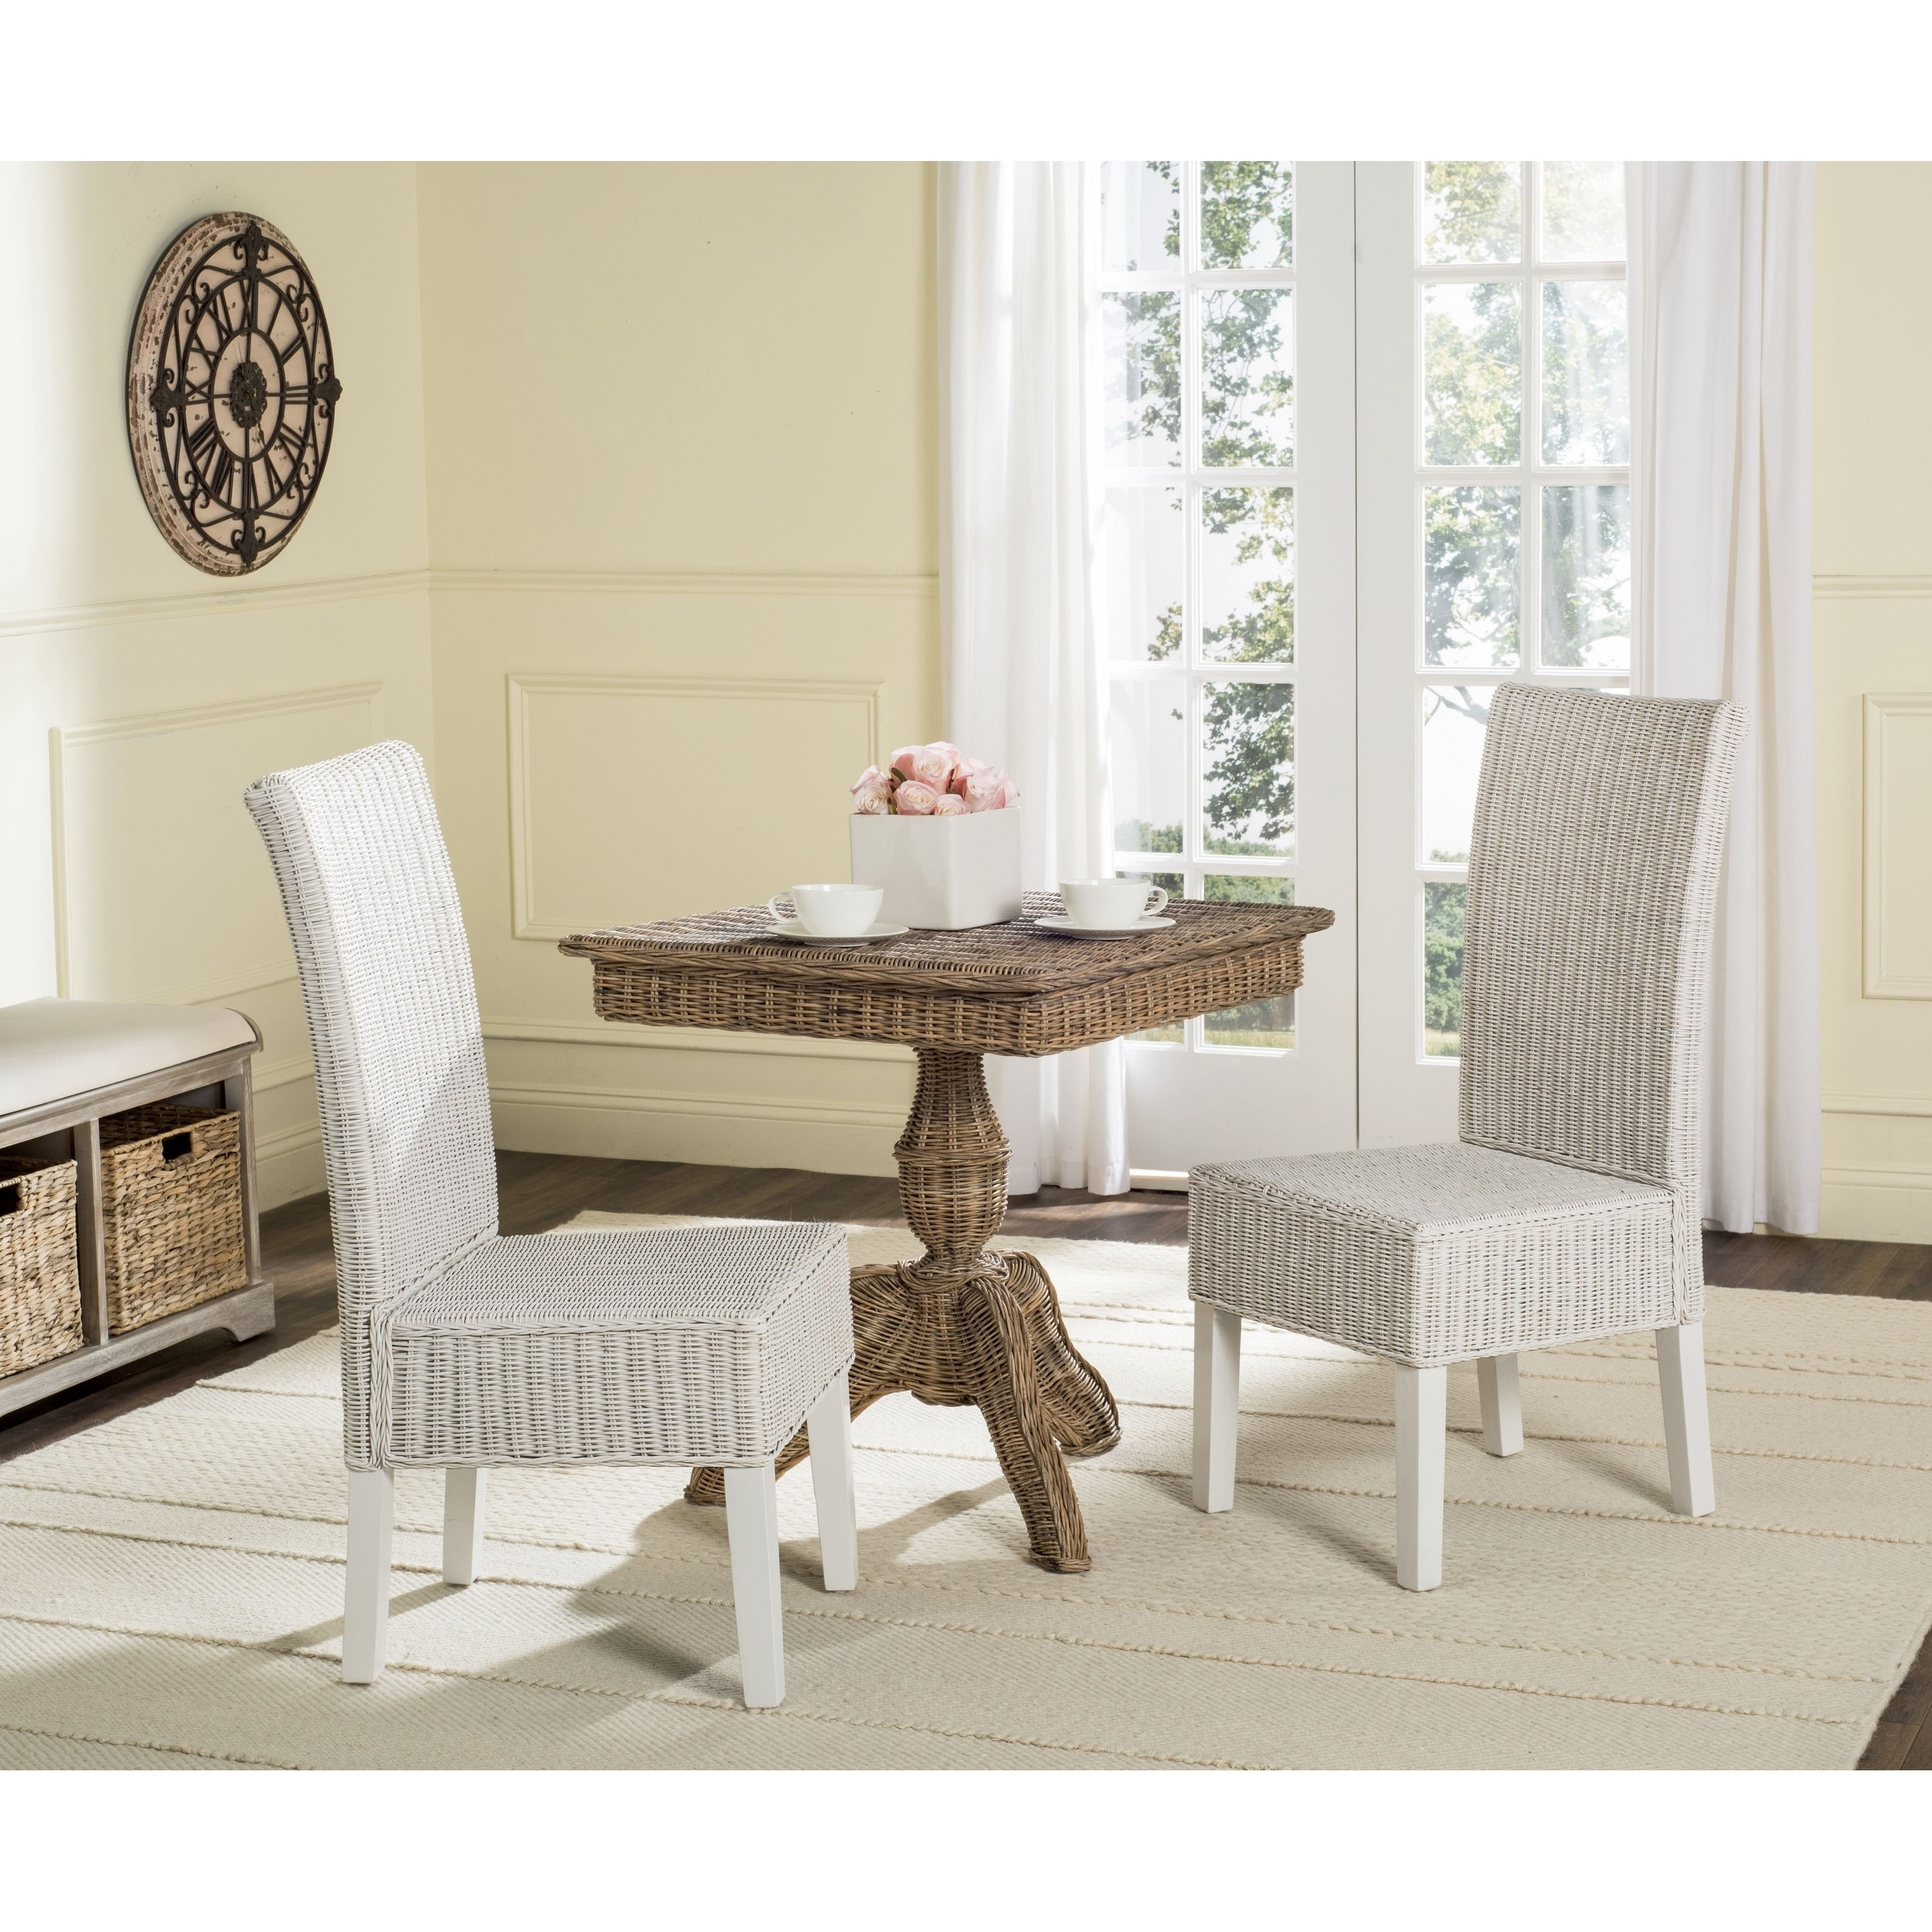 Safavieh Rural Woven Dining Arjun White Wicker Dining